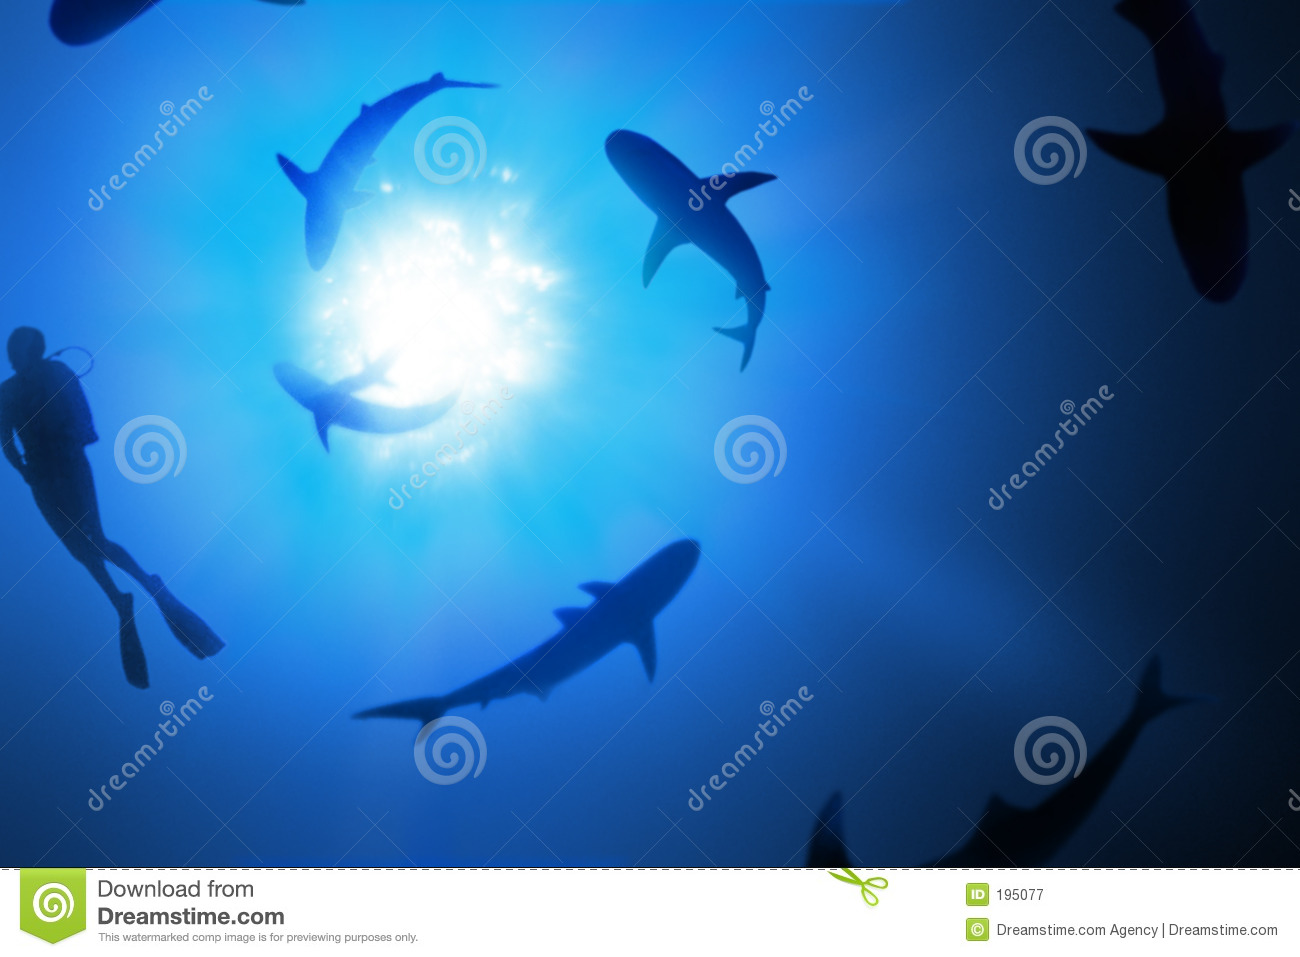 Swimming With Sharks Royalty Free Stock Photography - Image: 195077